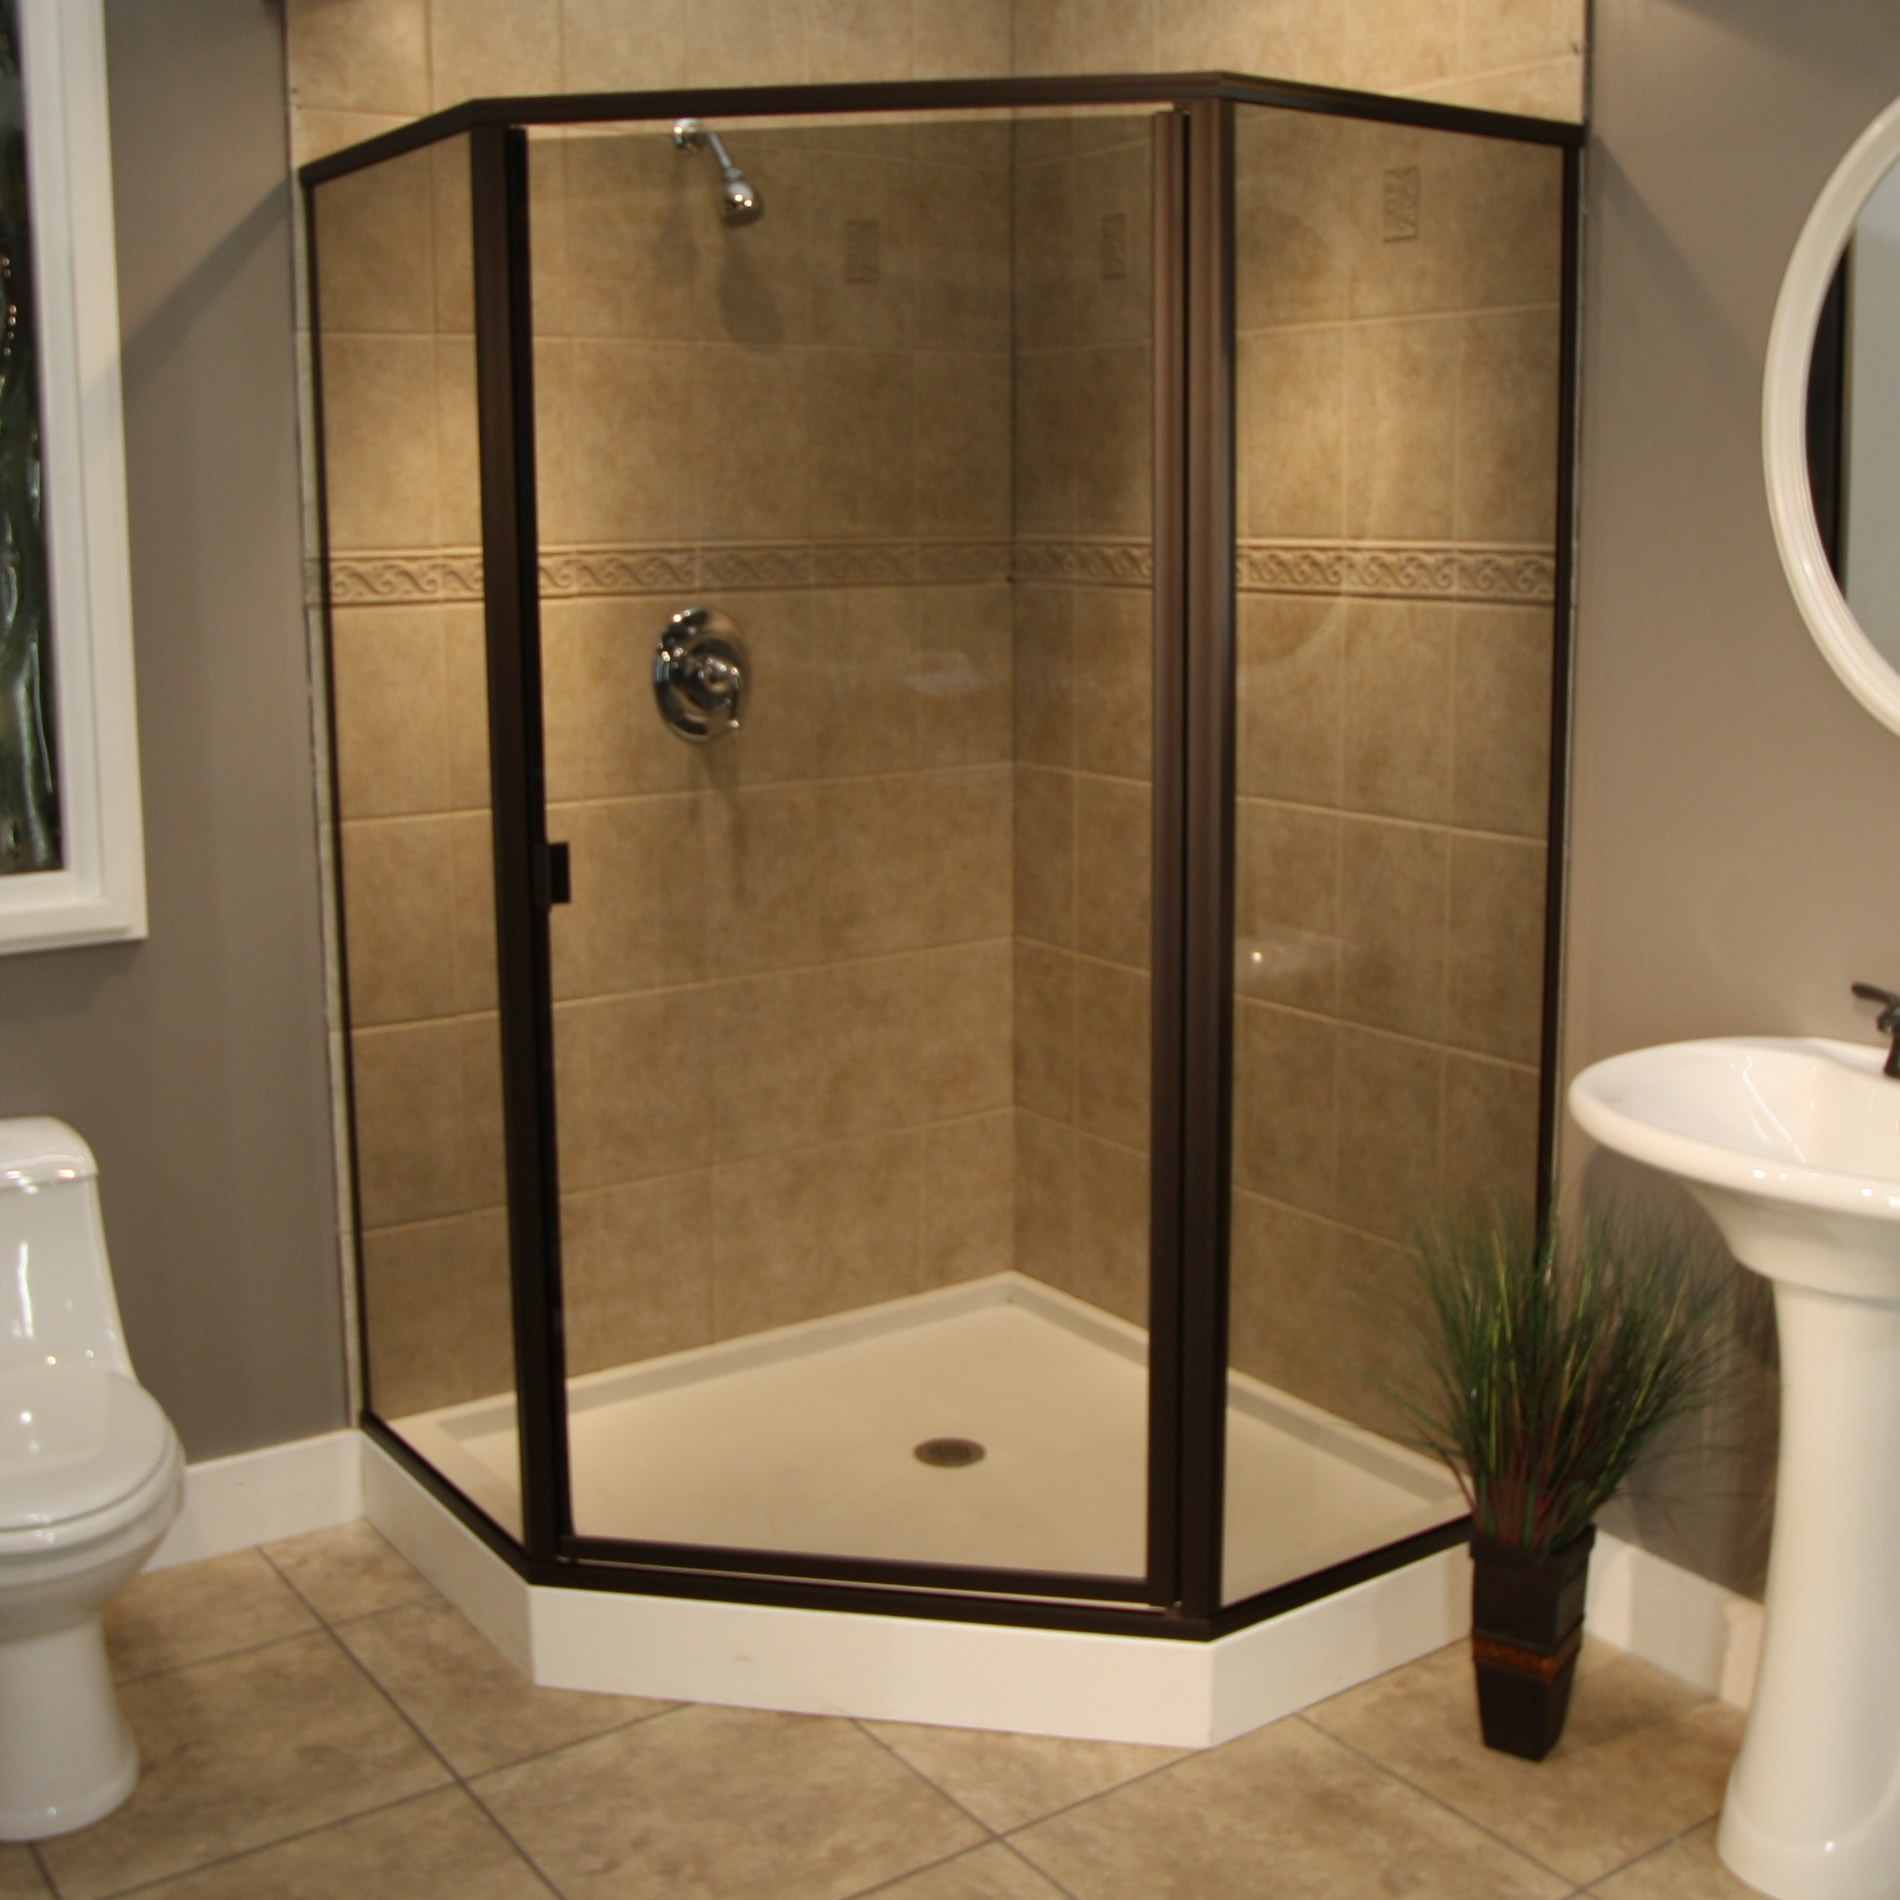 Shower Enclosures - Cardinal Series - CDNEO - ORB-Smoke